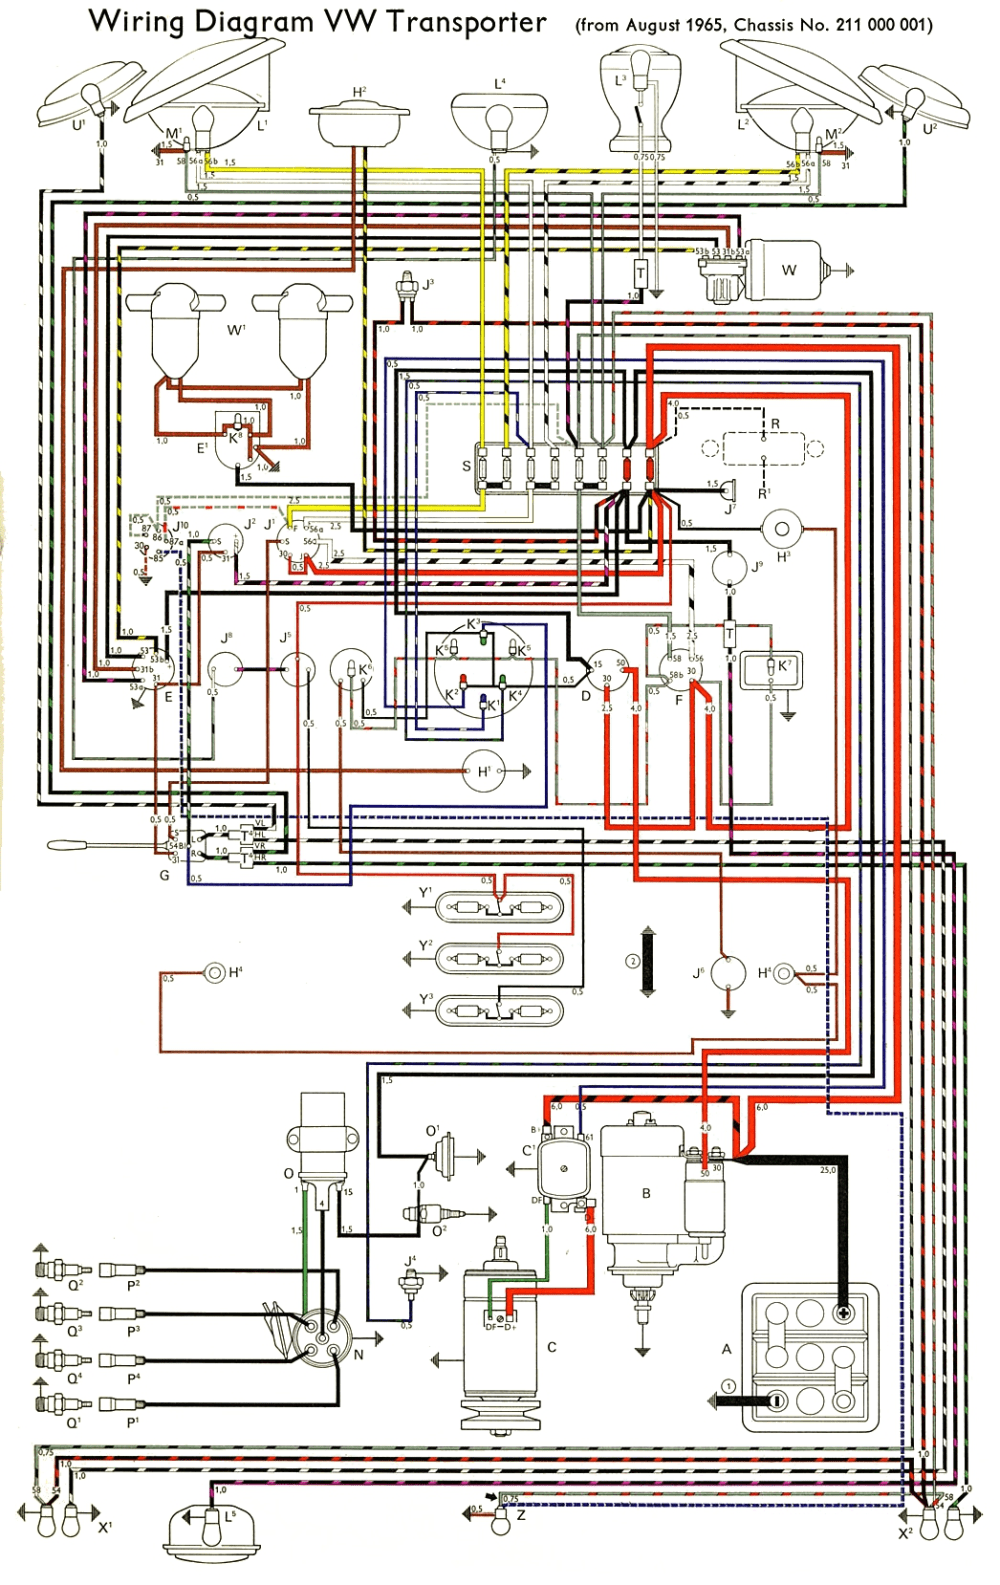 medium resolution of thomas wiring diagrams simple wiring diagram baldor motor wiring diagram thomas bus wiring schematics wiring diagram